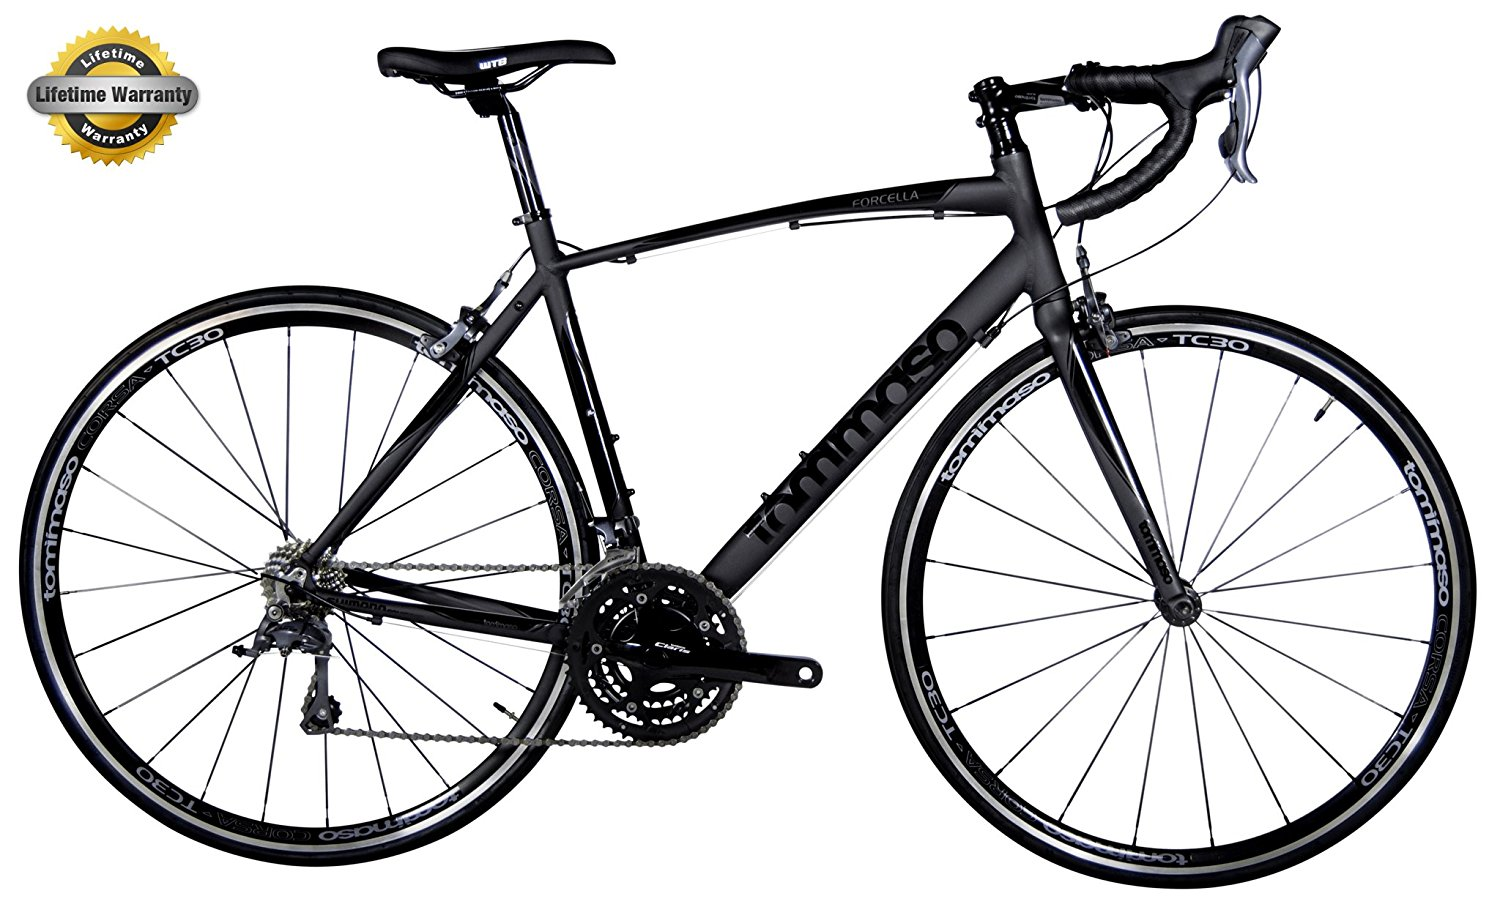 Tommaso Forcella Compact Aluminum Road Bike with Carbon Fork